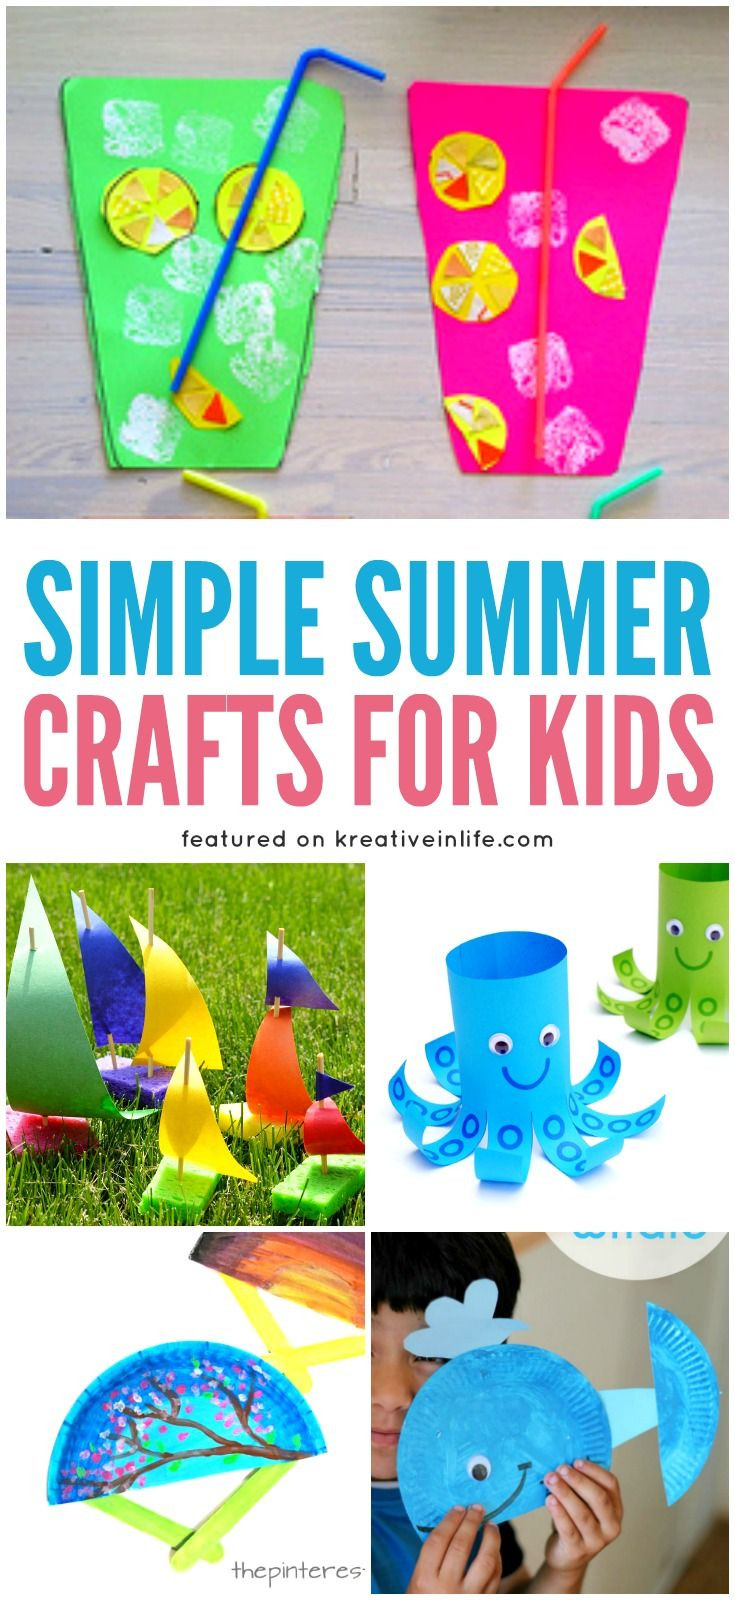 Best ideas about Simple Activities For Kids . Save or Pin Best 25 Summer crafts ideas on Pinterest Now.